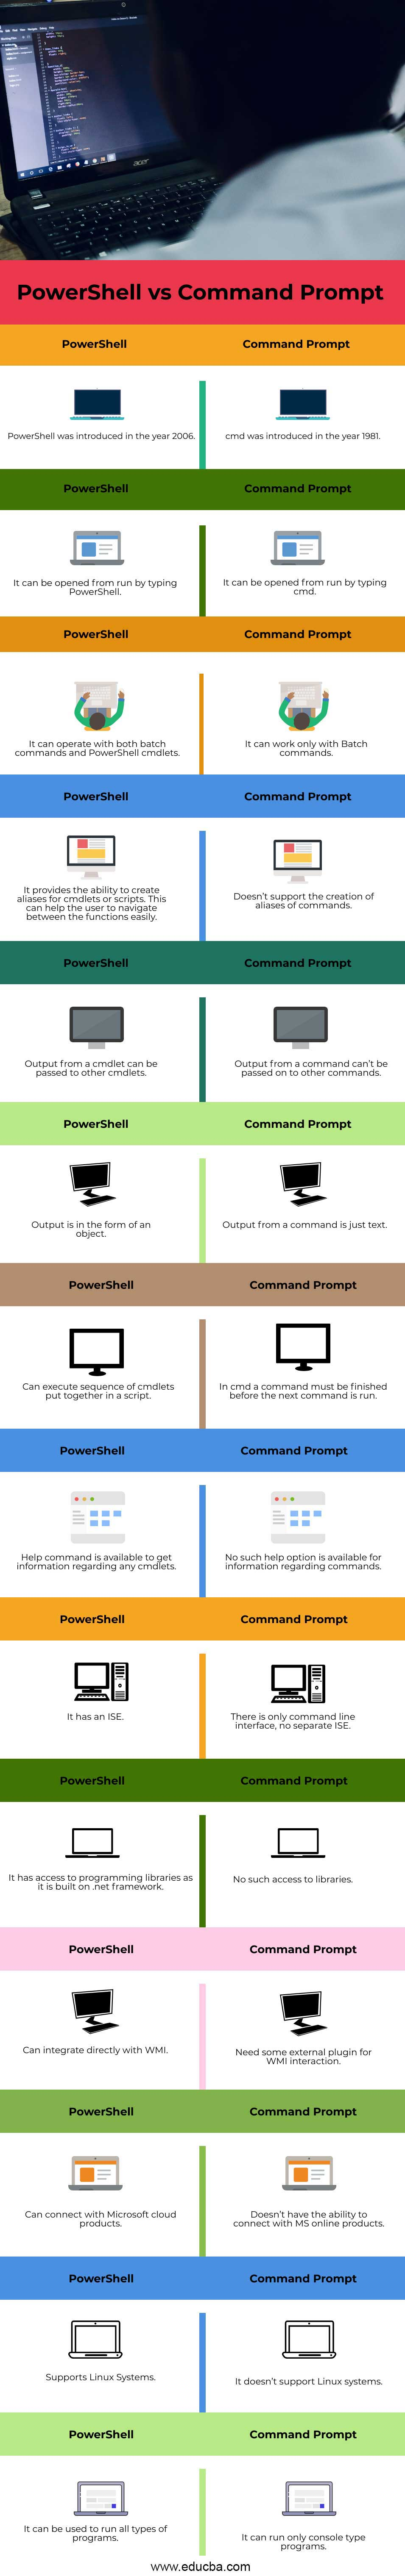 Powershell-vs-command-prompt-info